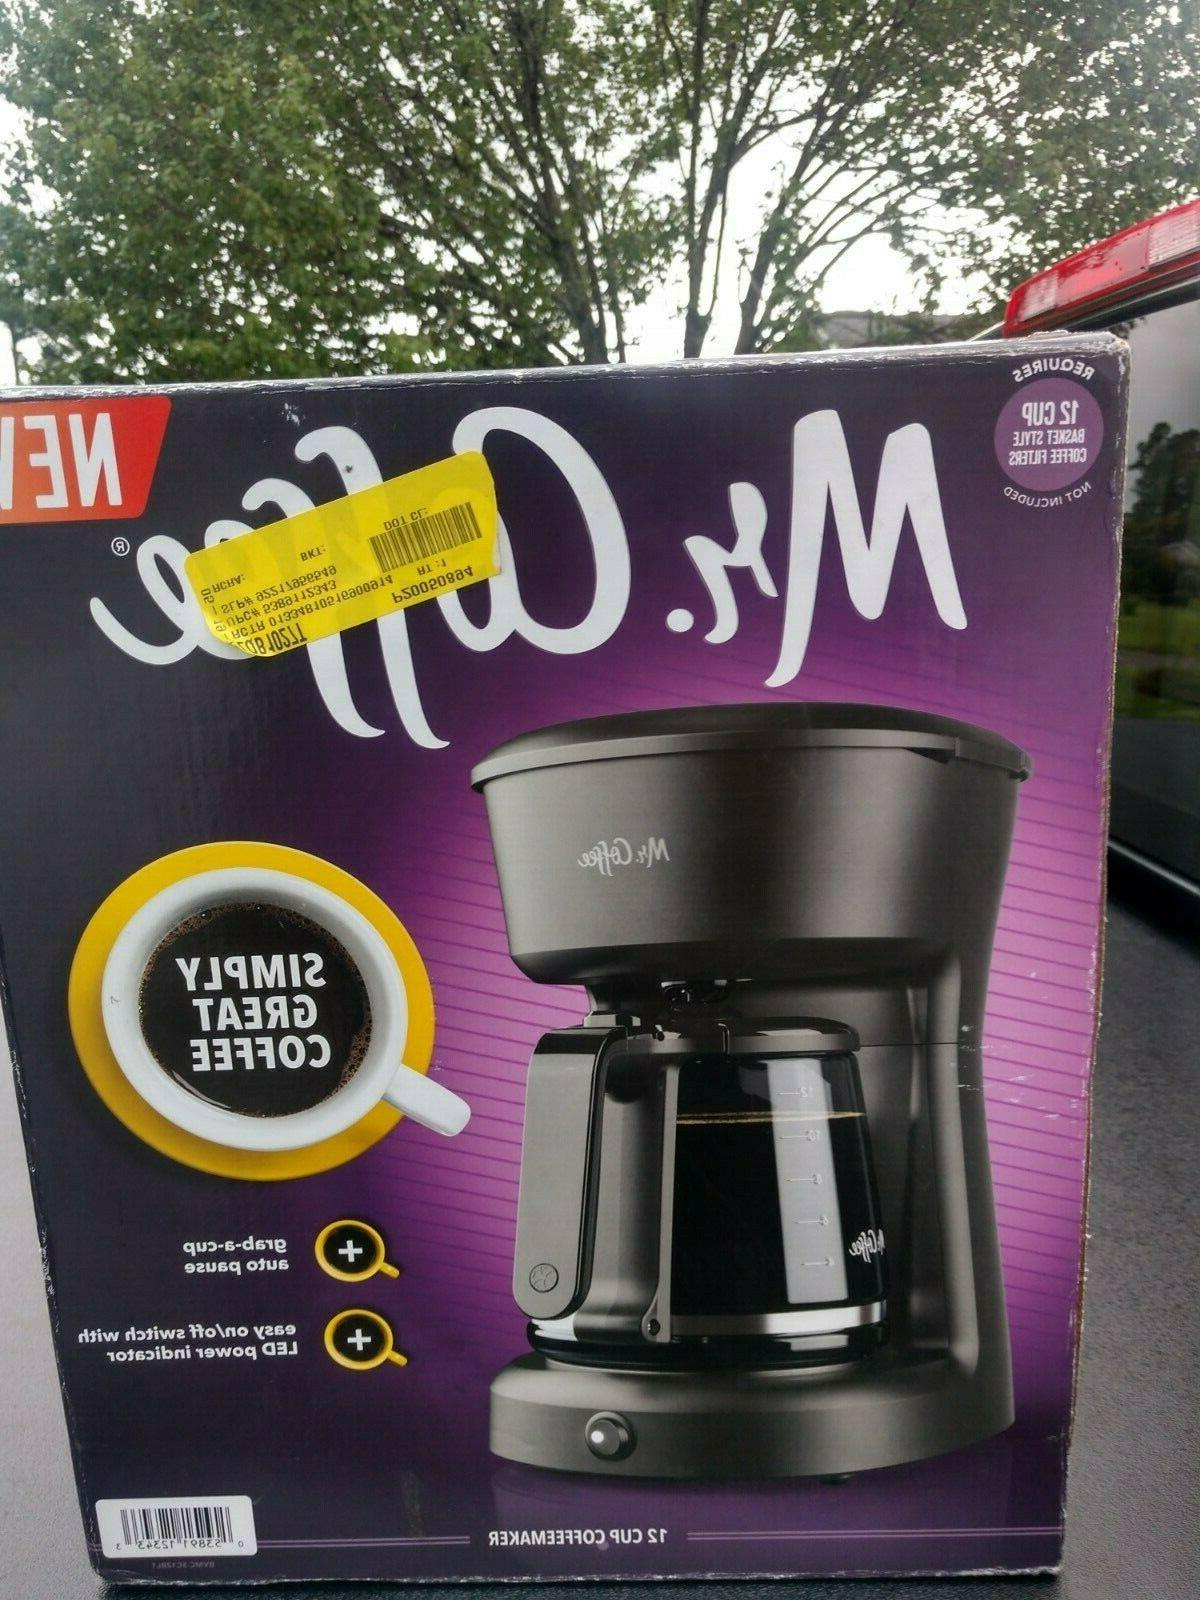 mr coffee 12 cup coffeemaker with easy